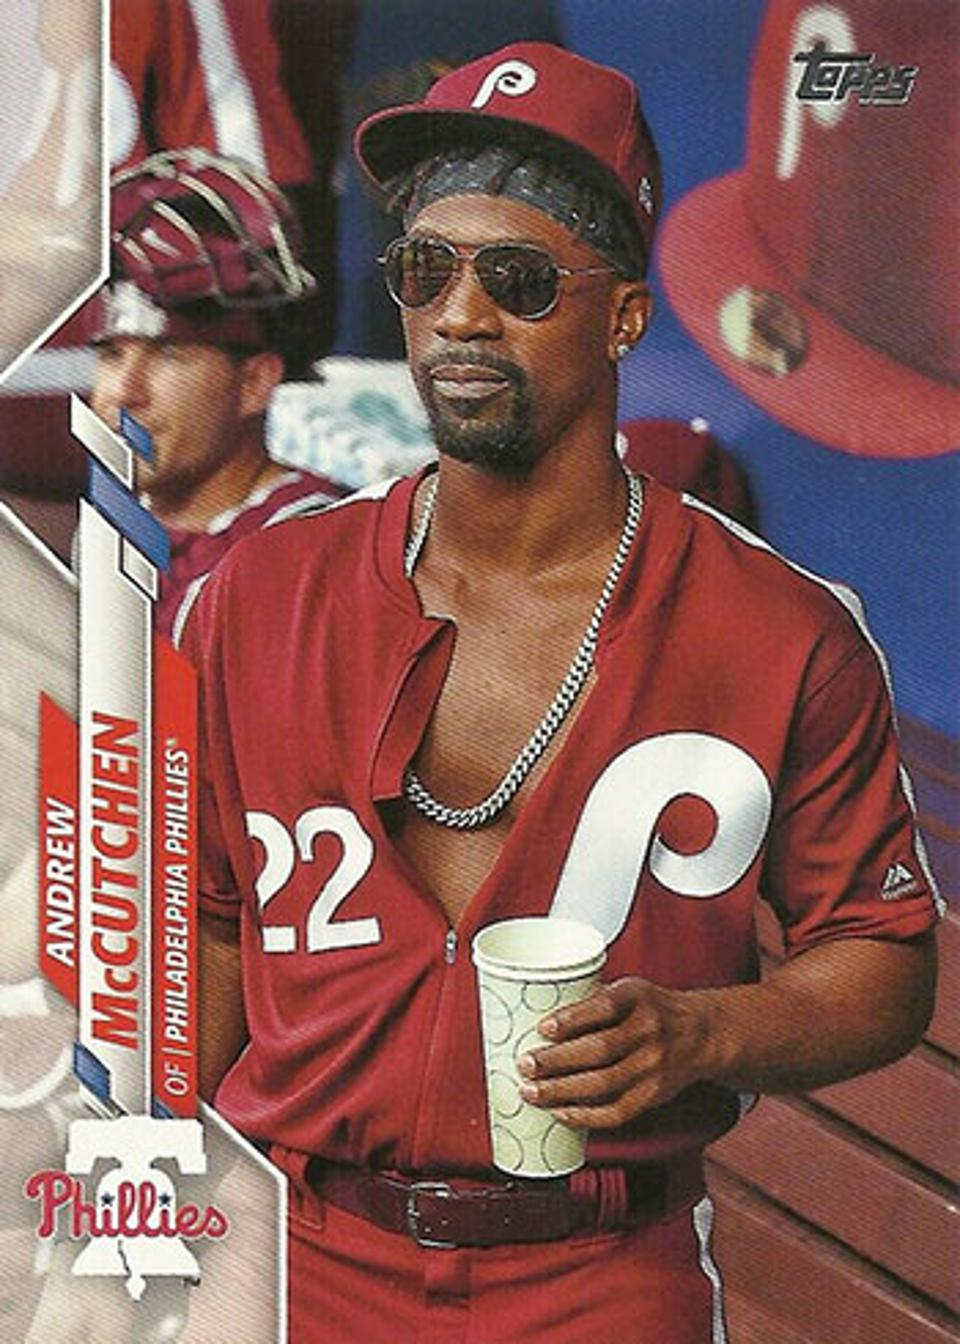 2020 Topps Series 2 Andrew McCutchen SP variation card.